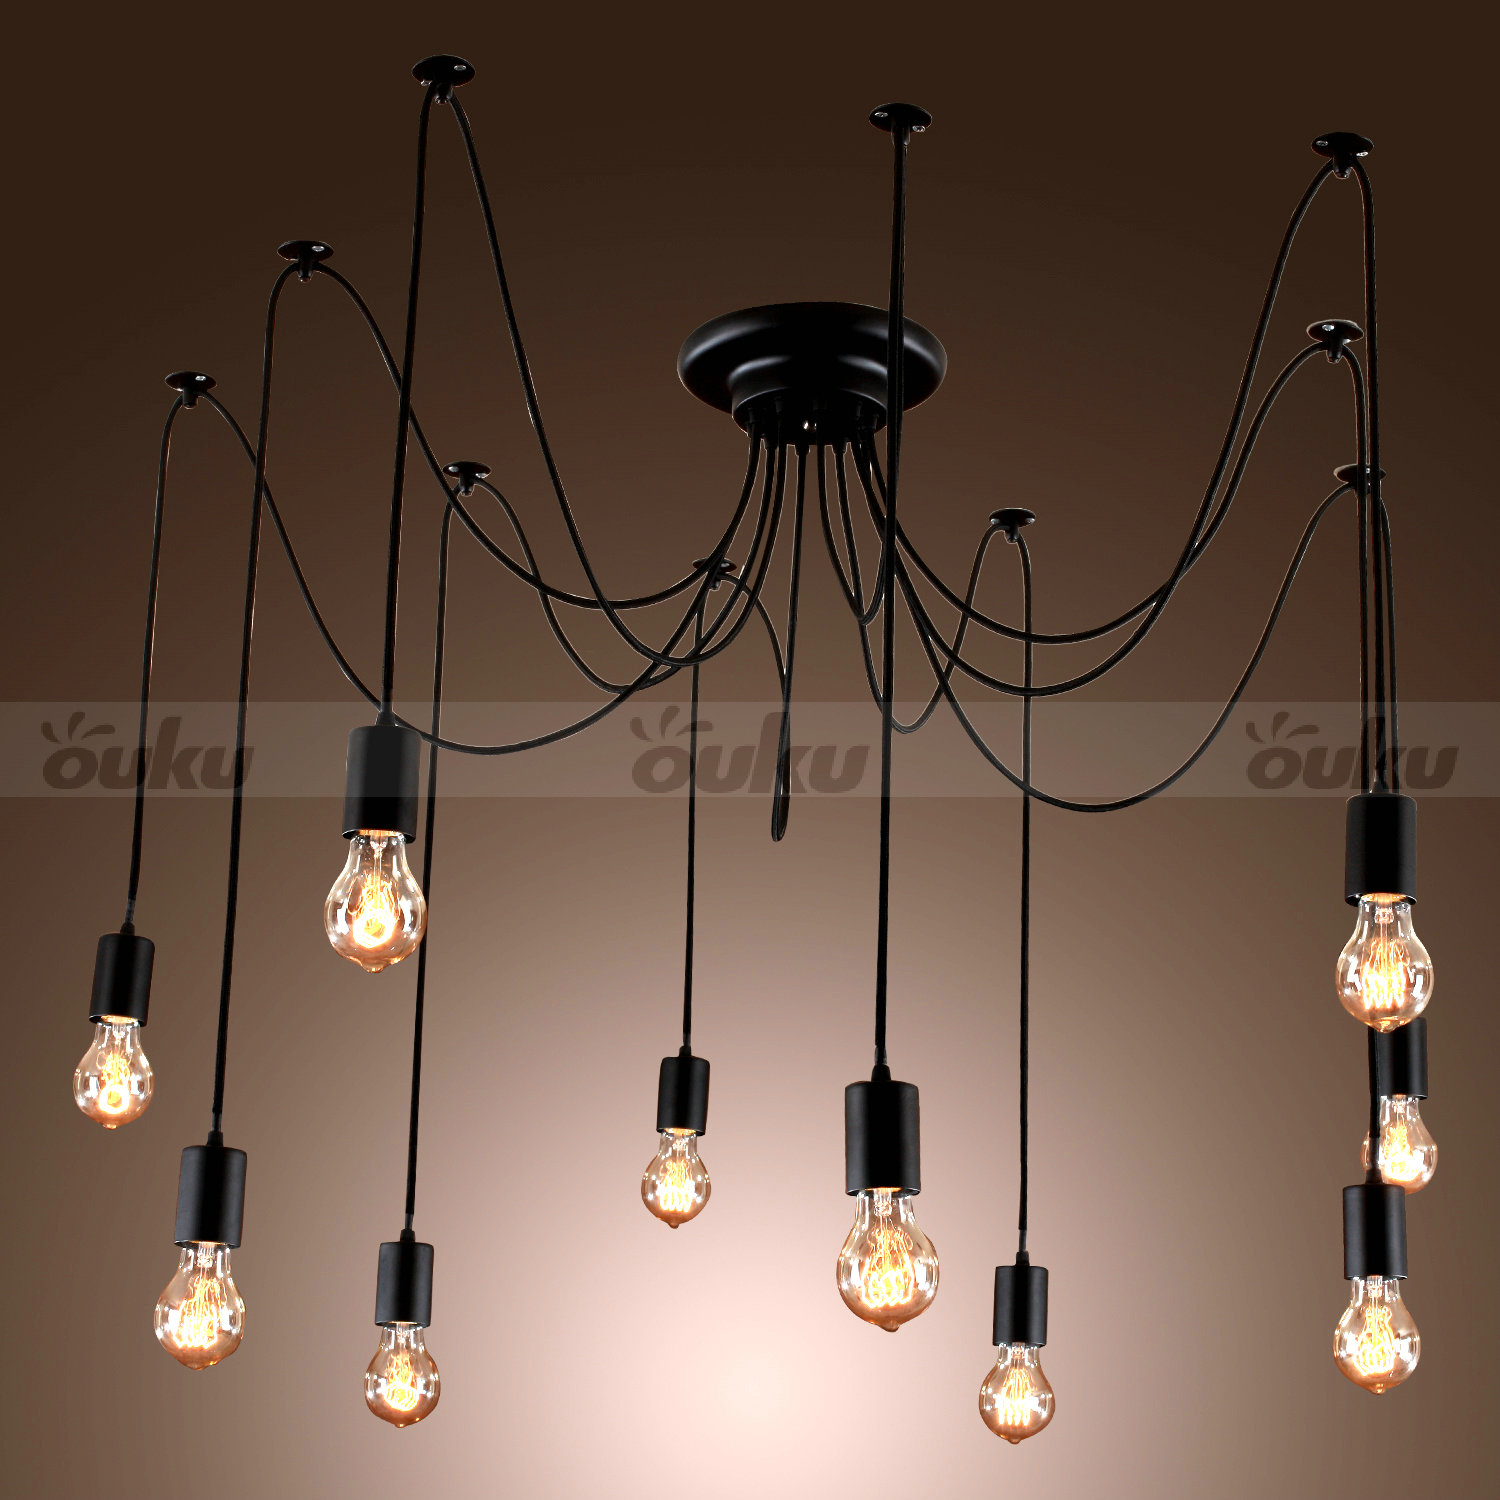 Edison style 10 lights bulb chandelier ceiling light pendant lamp fixture ebay - Chandelier ceiling lamp ...